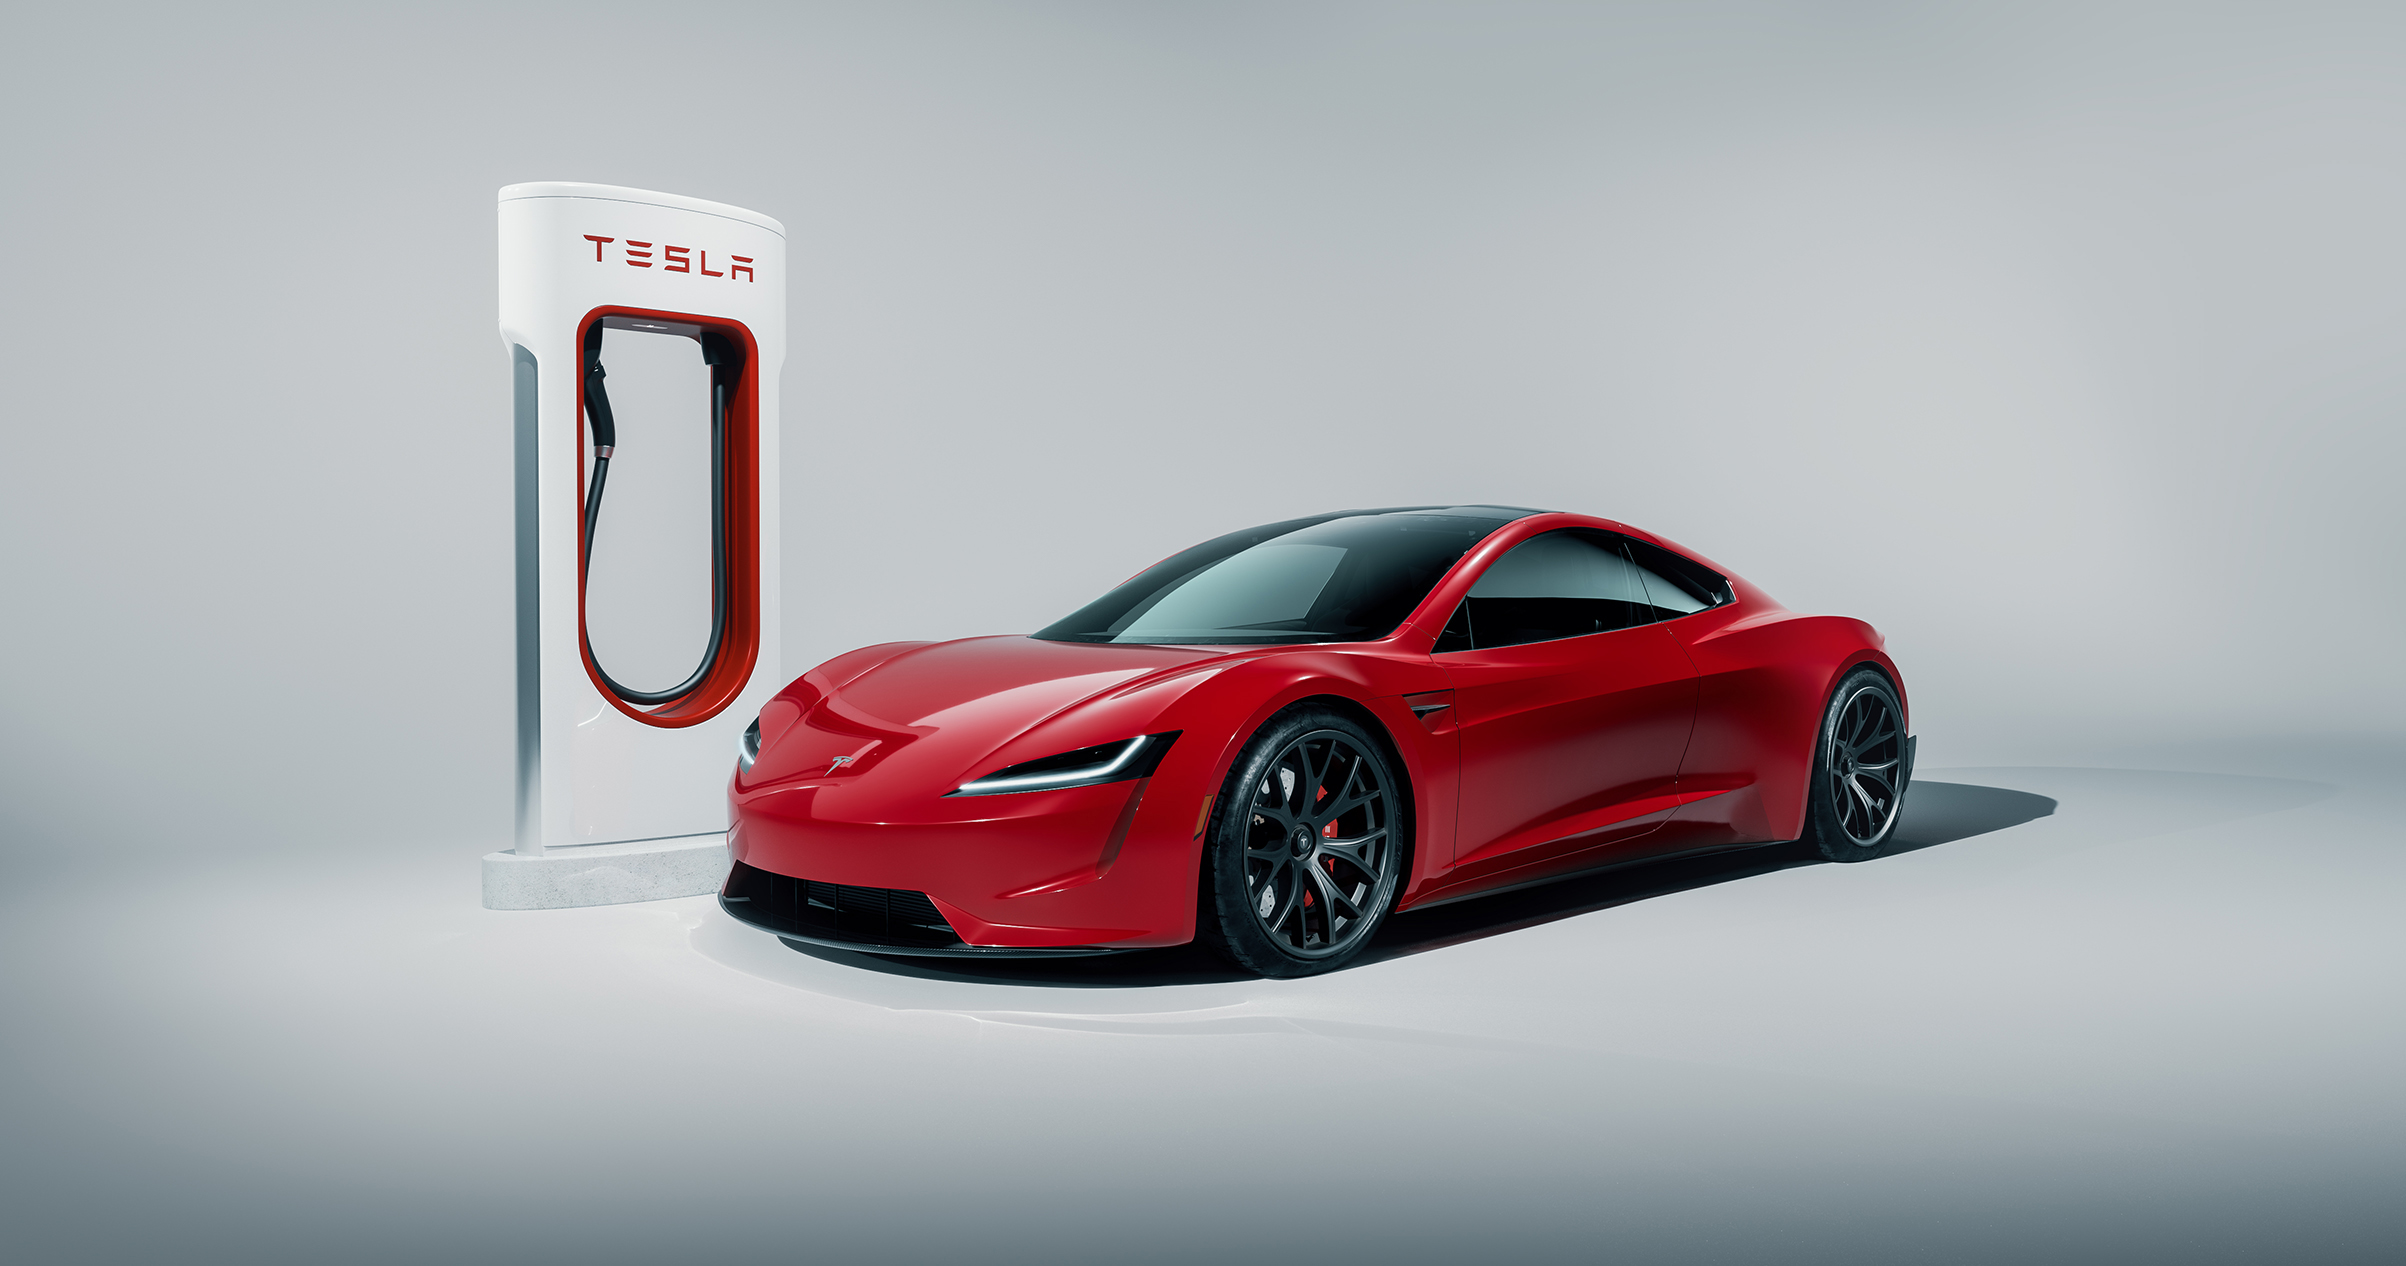 Tesla Roadster Charging Hub Hd Cars 4k Wallpapers Images Backgrounds Photos And Pictures